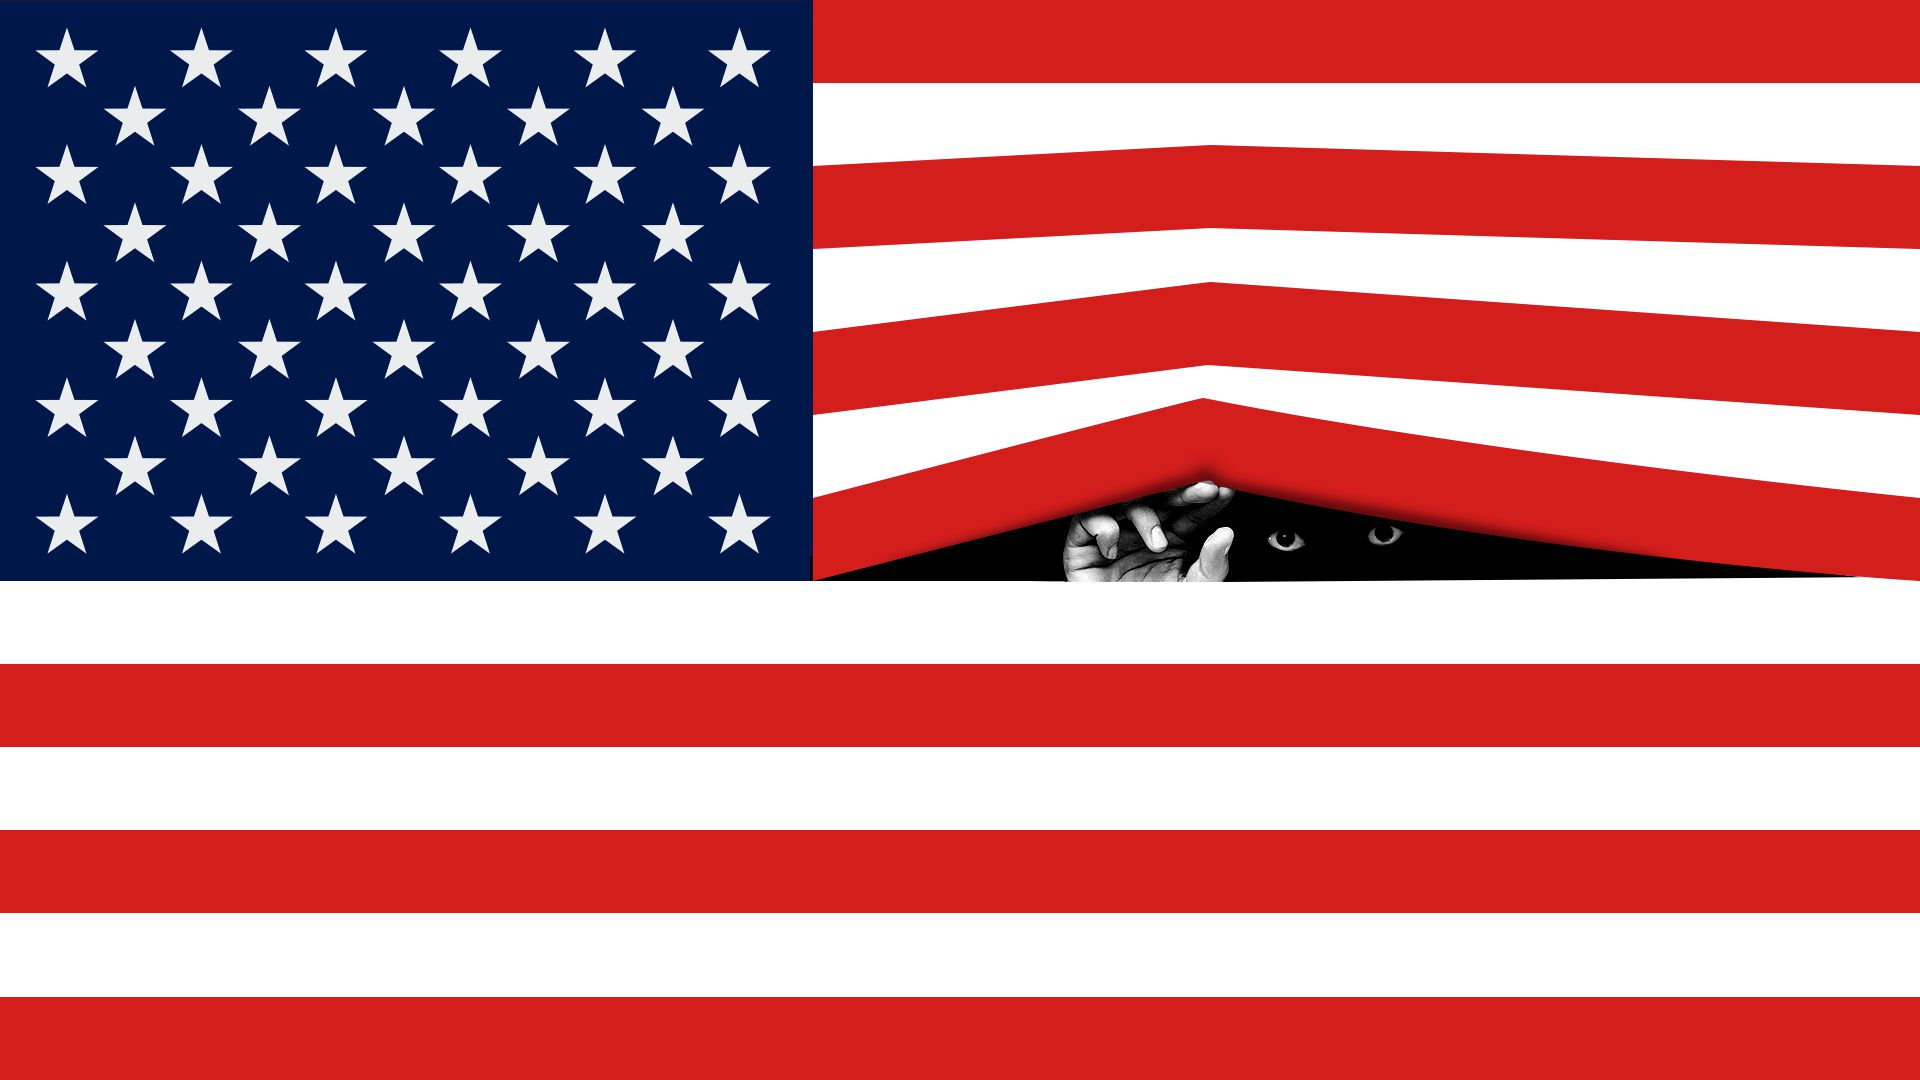 Illustration of the American flag with a hand reaching through as if the stripes were blinds, and a pair of eyes peeking through.